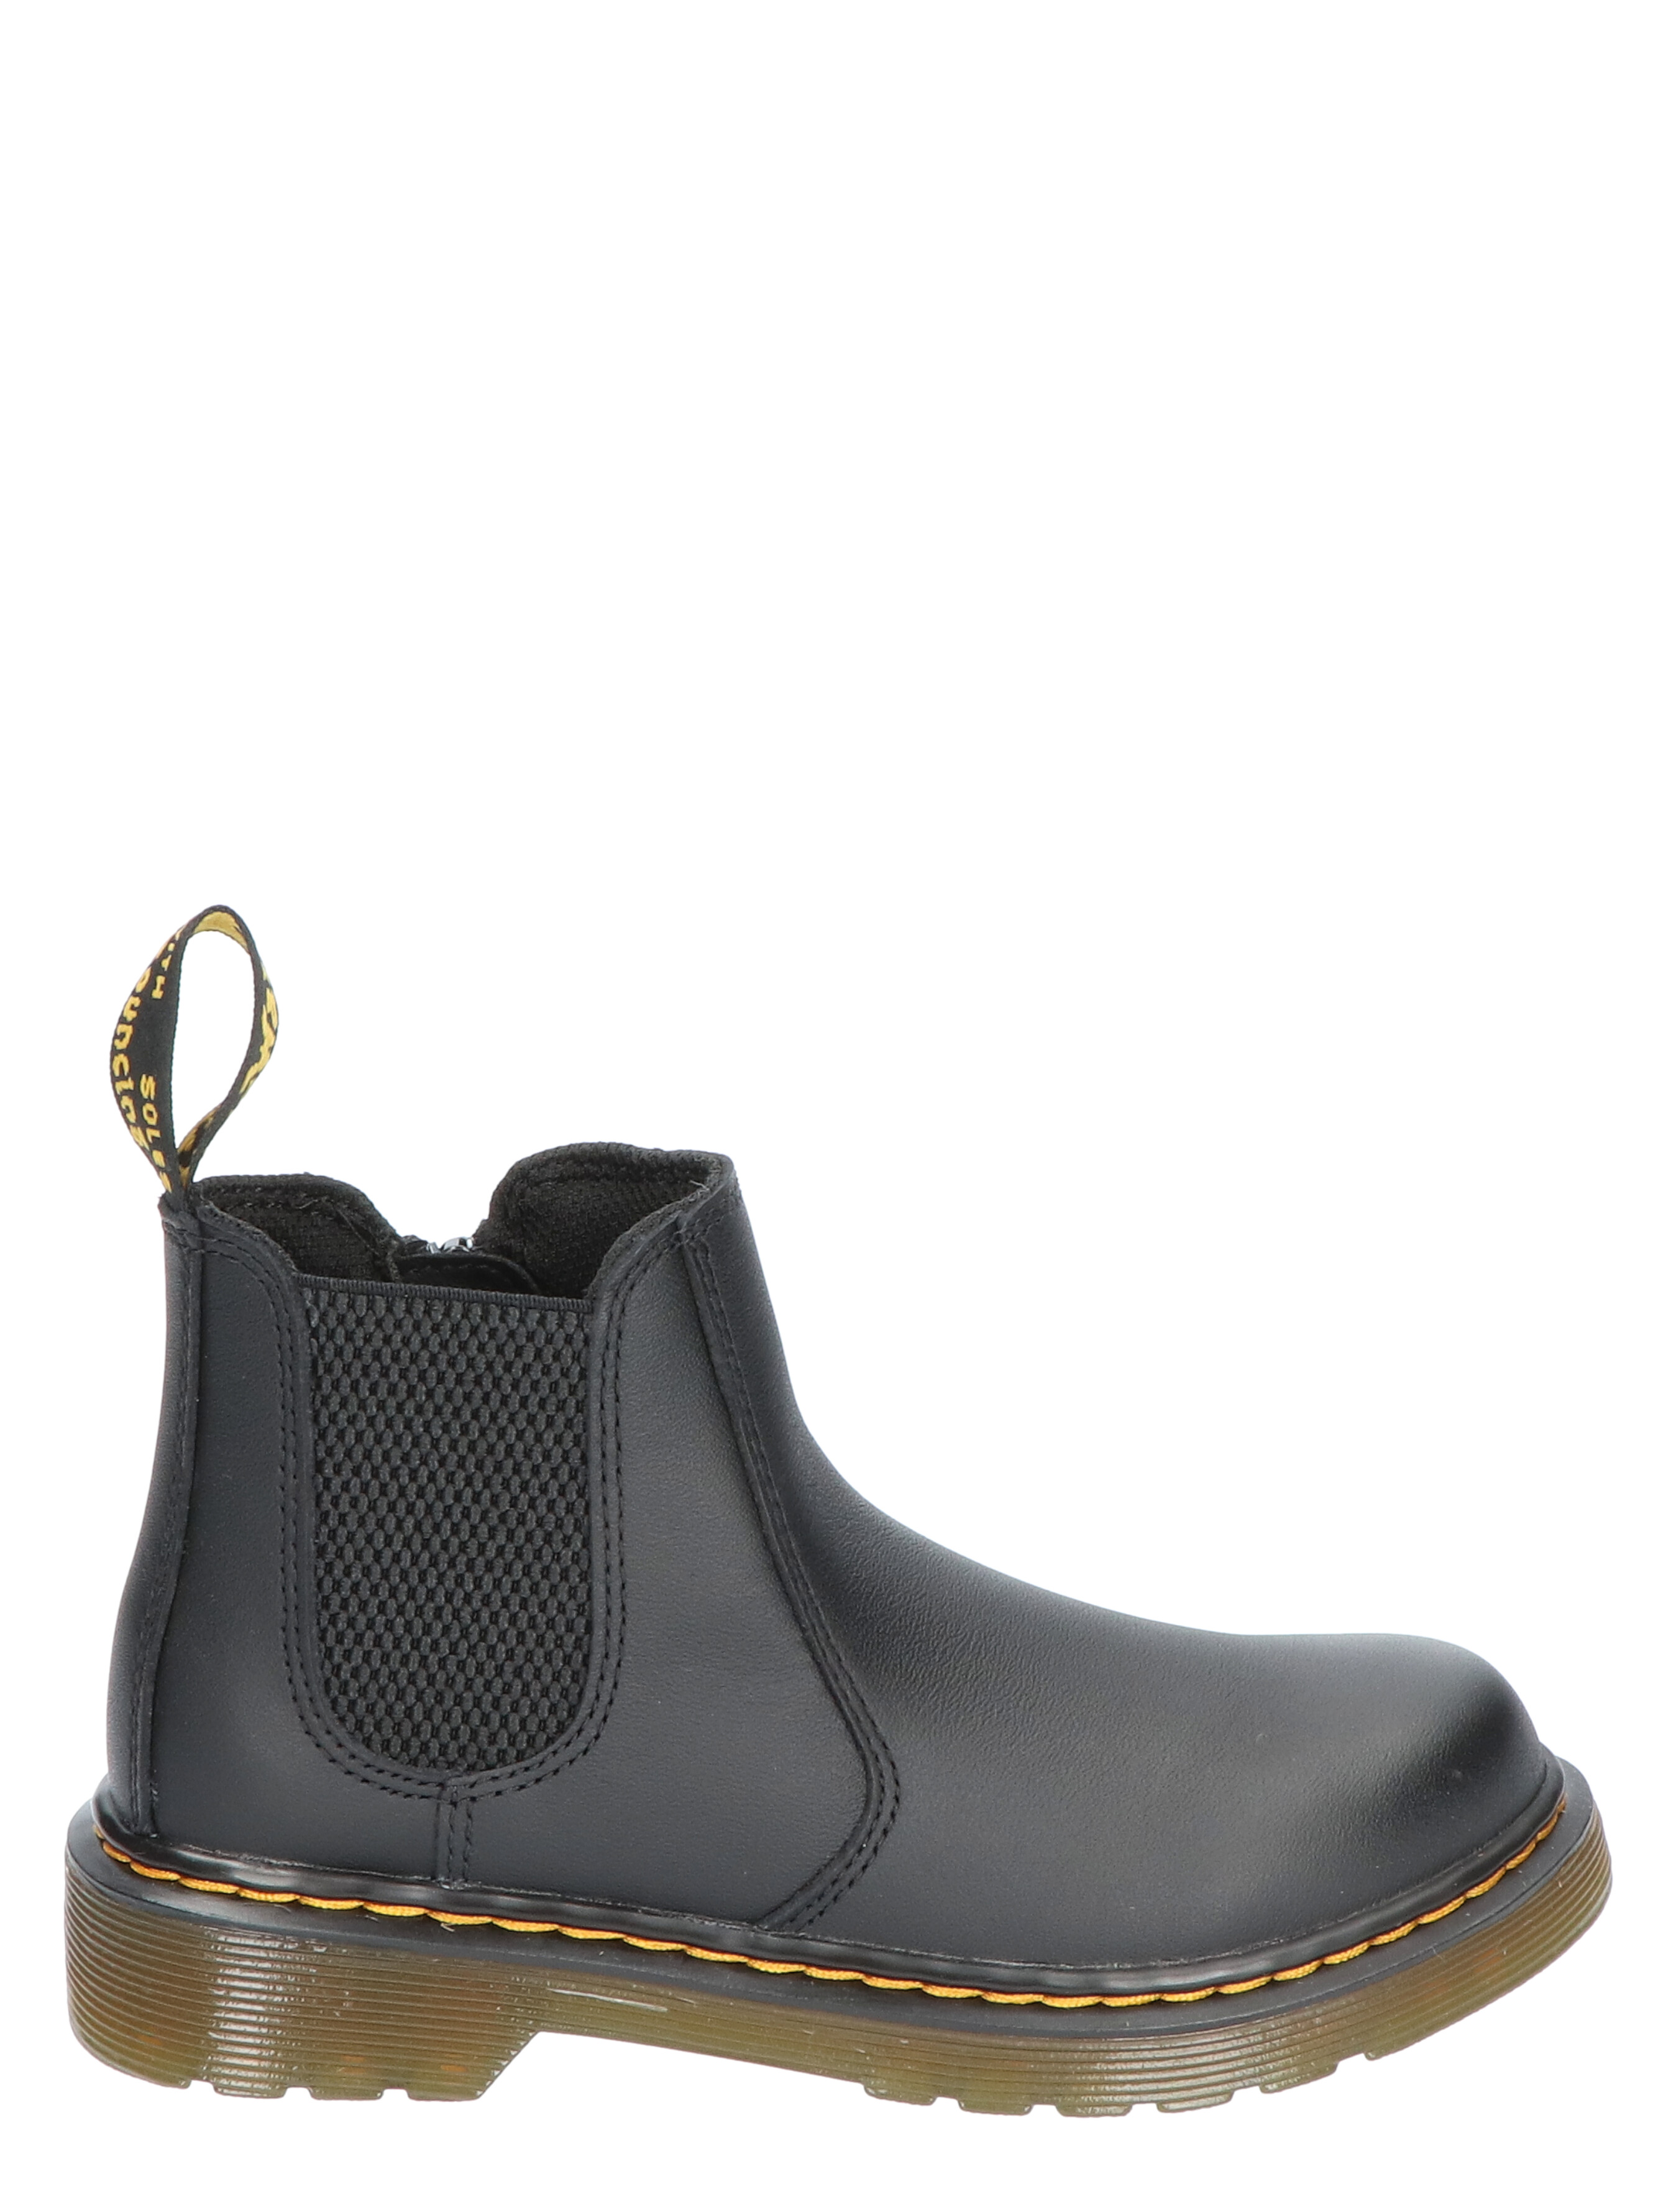 Dr Martens 2976 Black Softy Boots